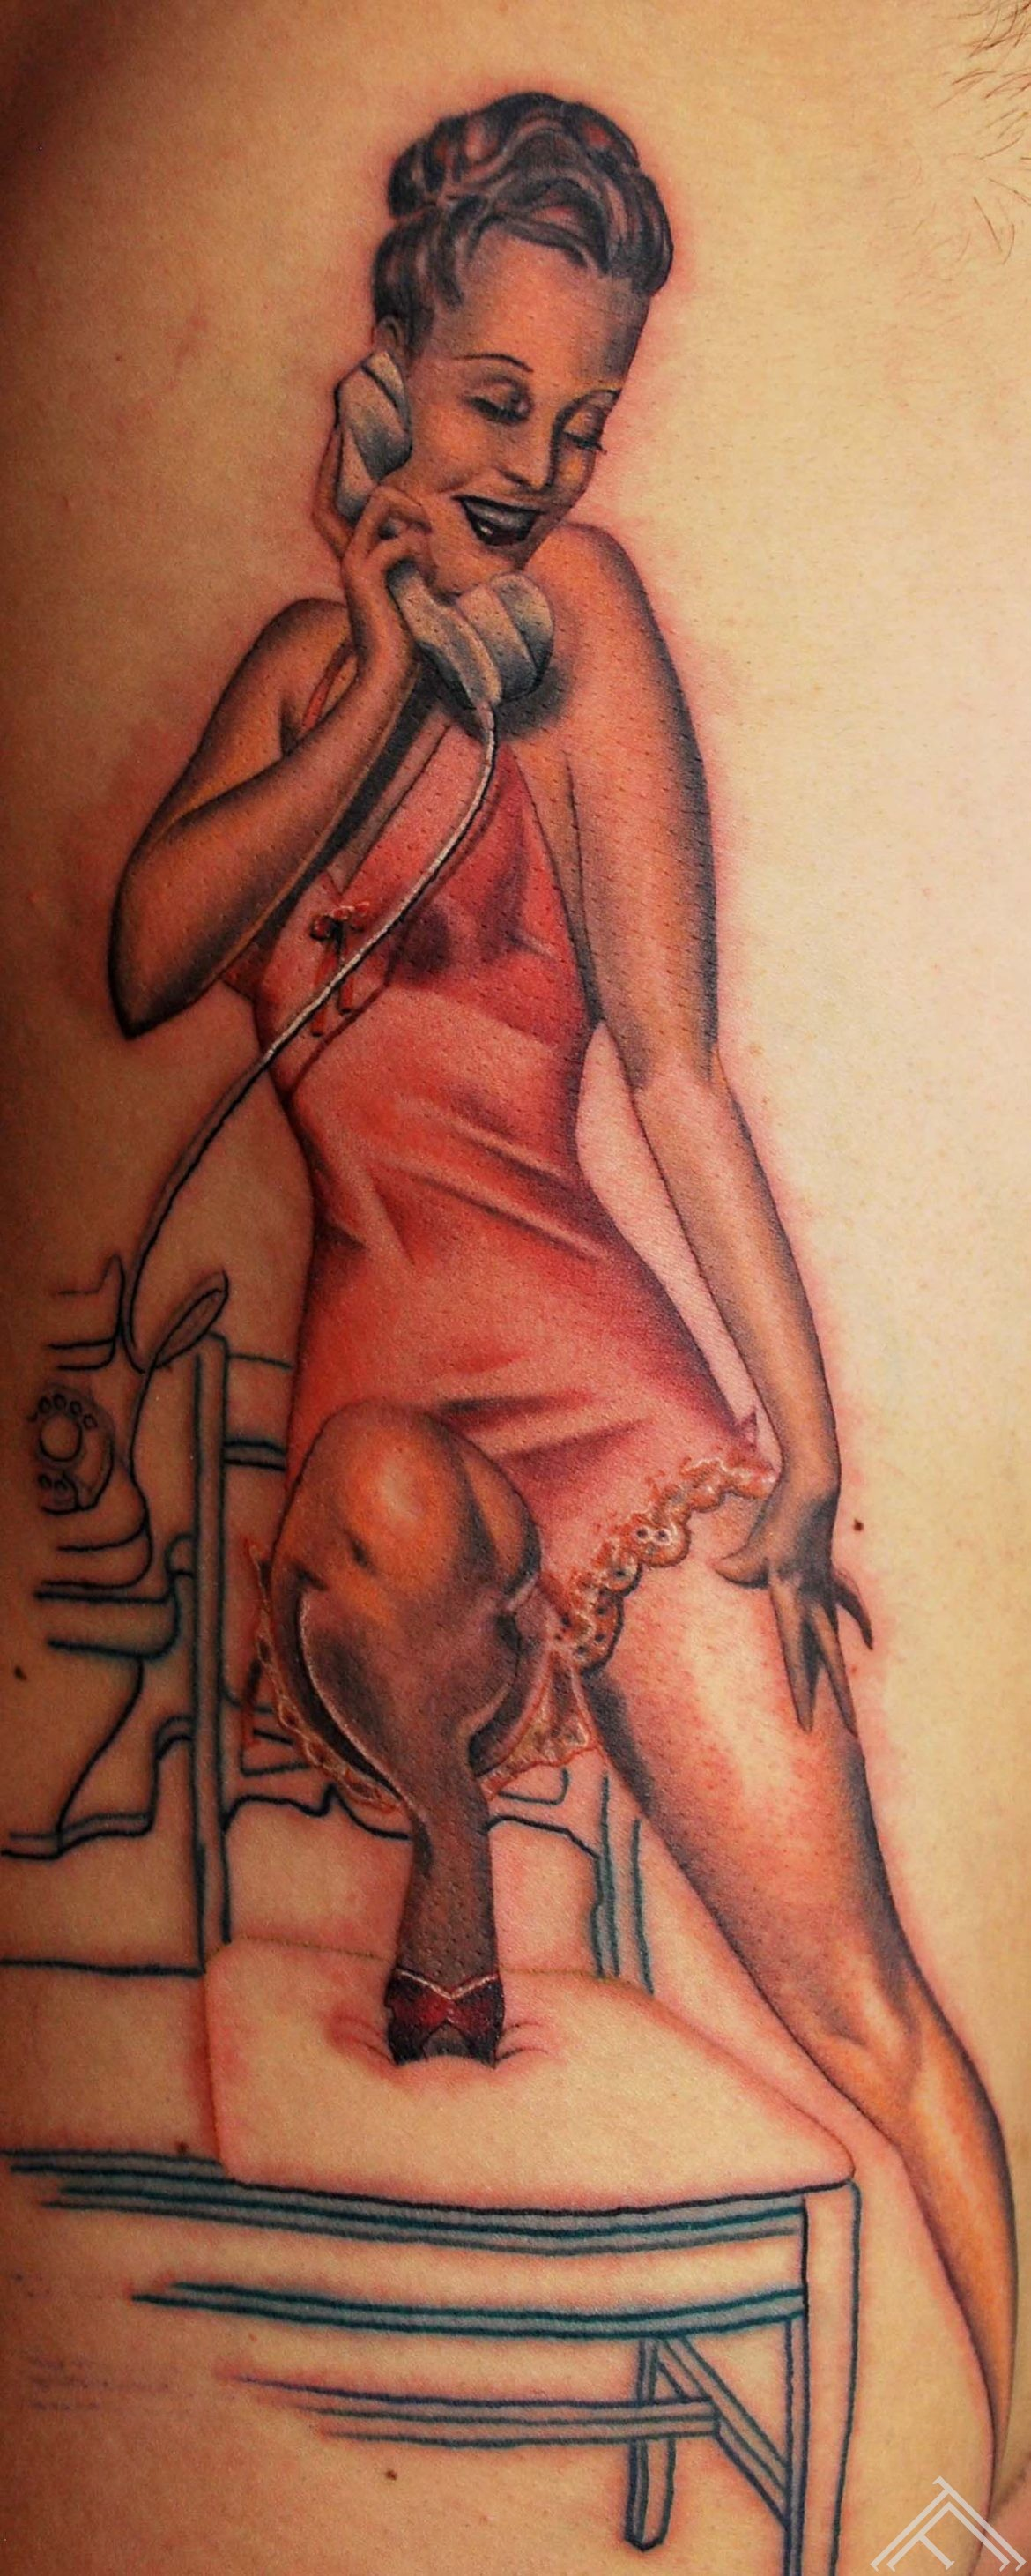 maris pavlo_pin up_tattoo